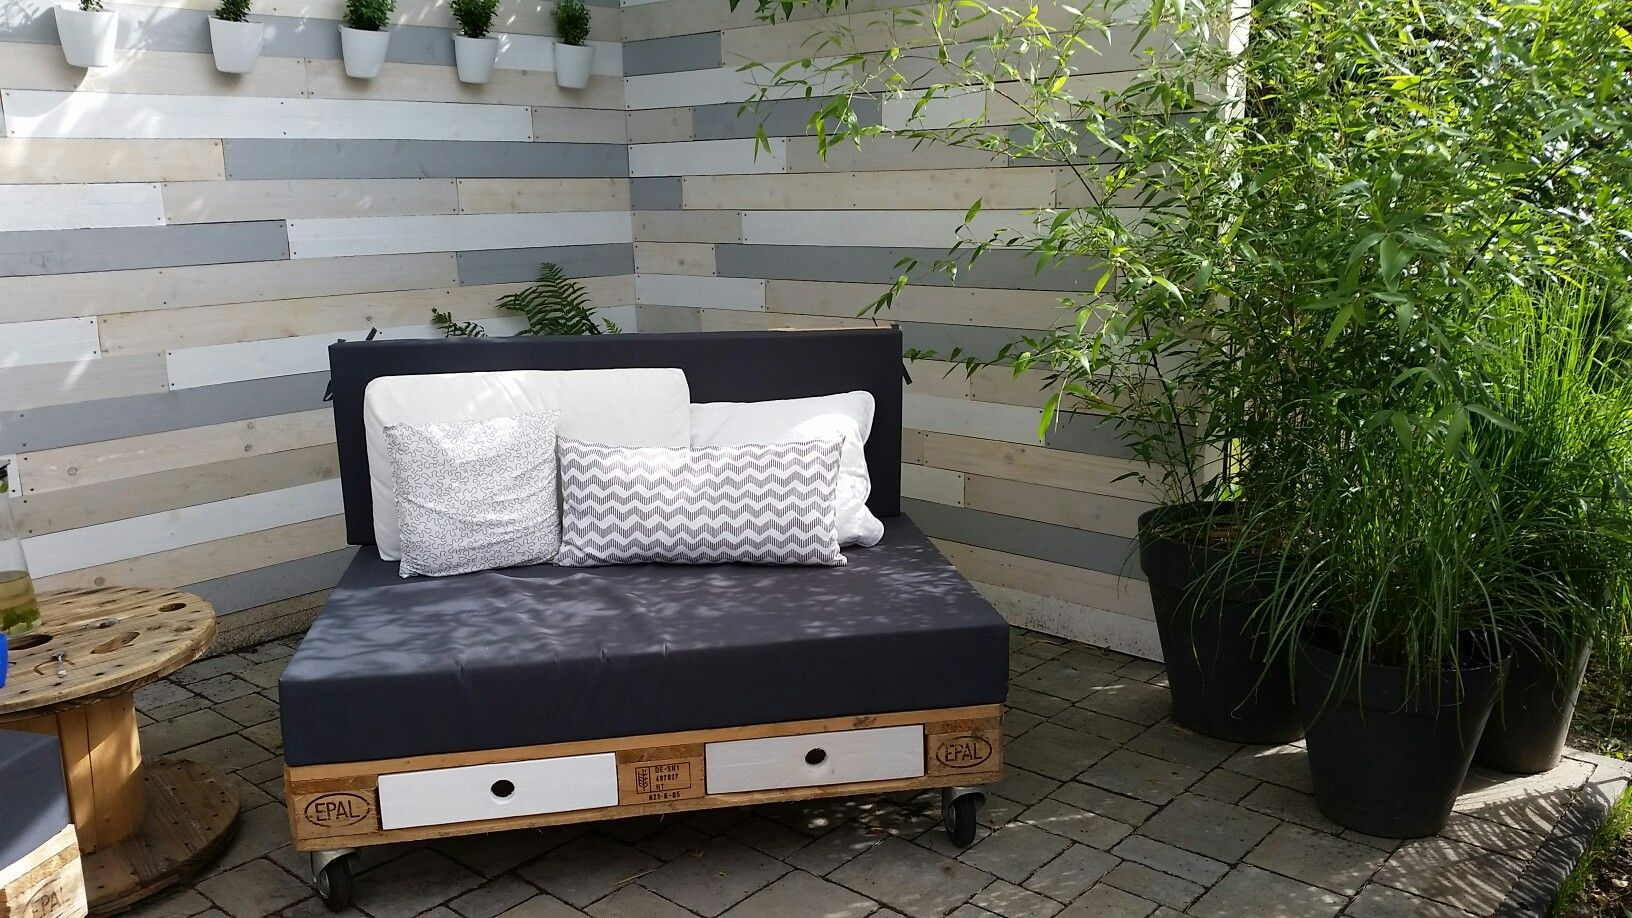 gartensofa palettensofa pallet lounge sichtschutzzaun. Black Bedroom Furniture Sets. Home Design Ideas